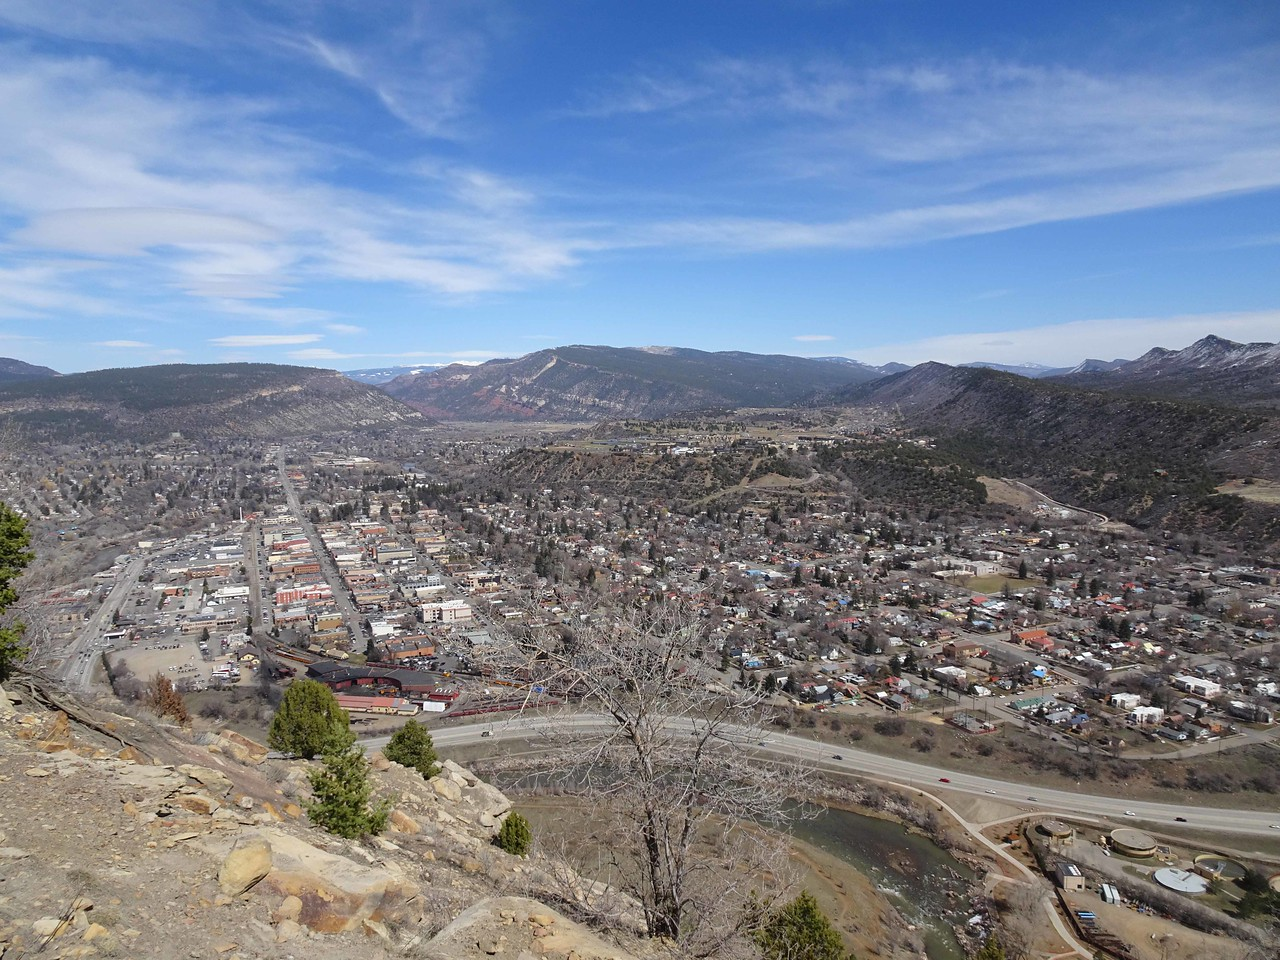 87 City of Durango and beyond